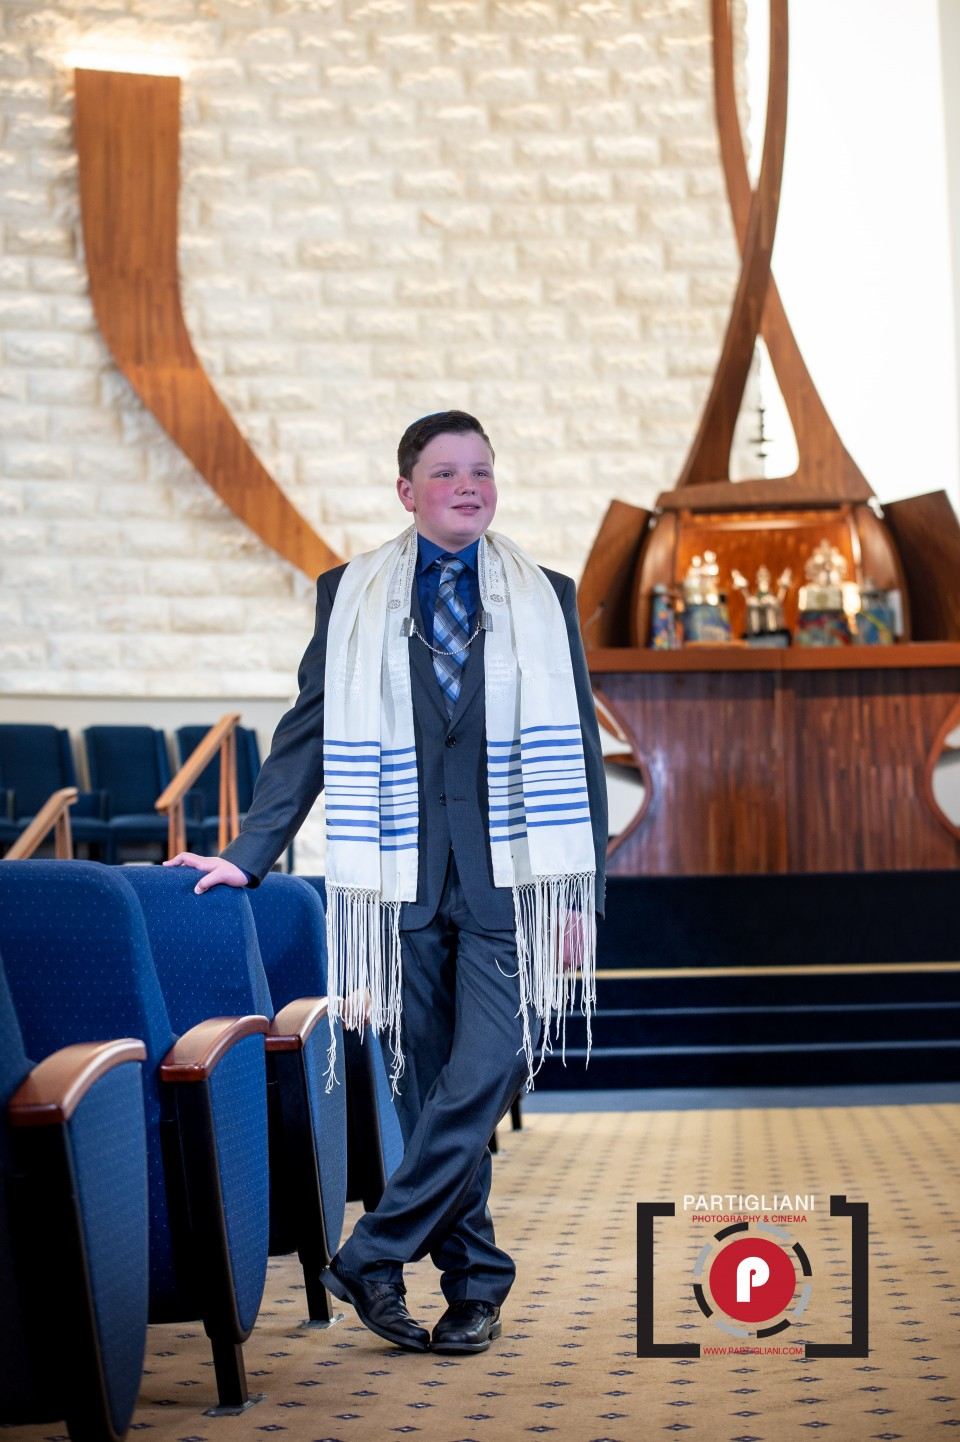 TEMPLE BETH EL, PARTIGLIANI PHOTOGRAPHY- BEN'S BAR MITZVAH-58